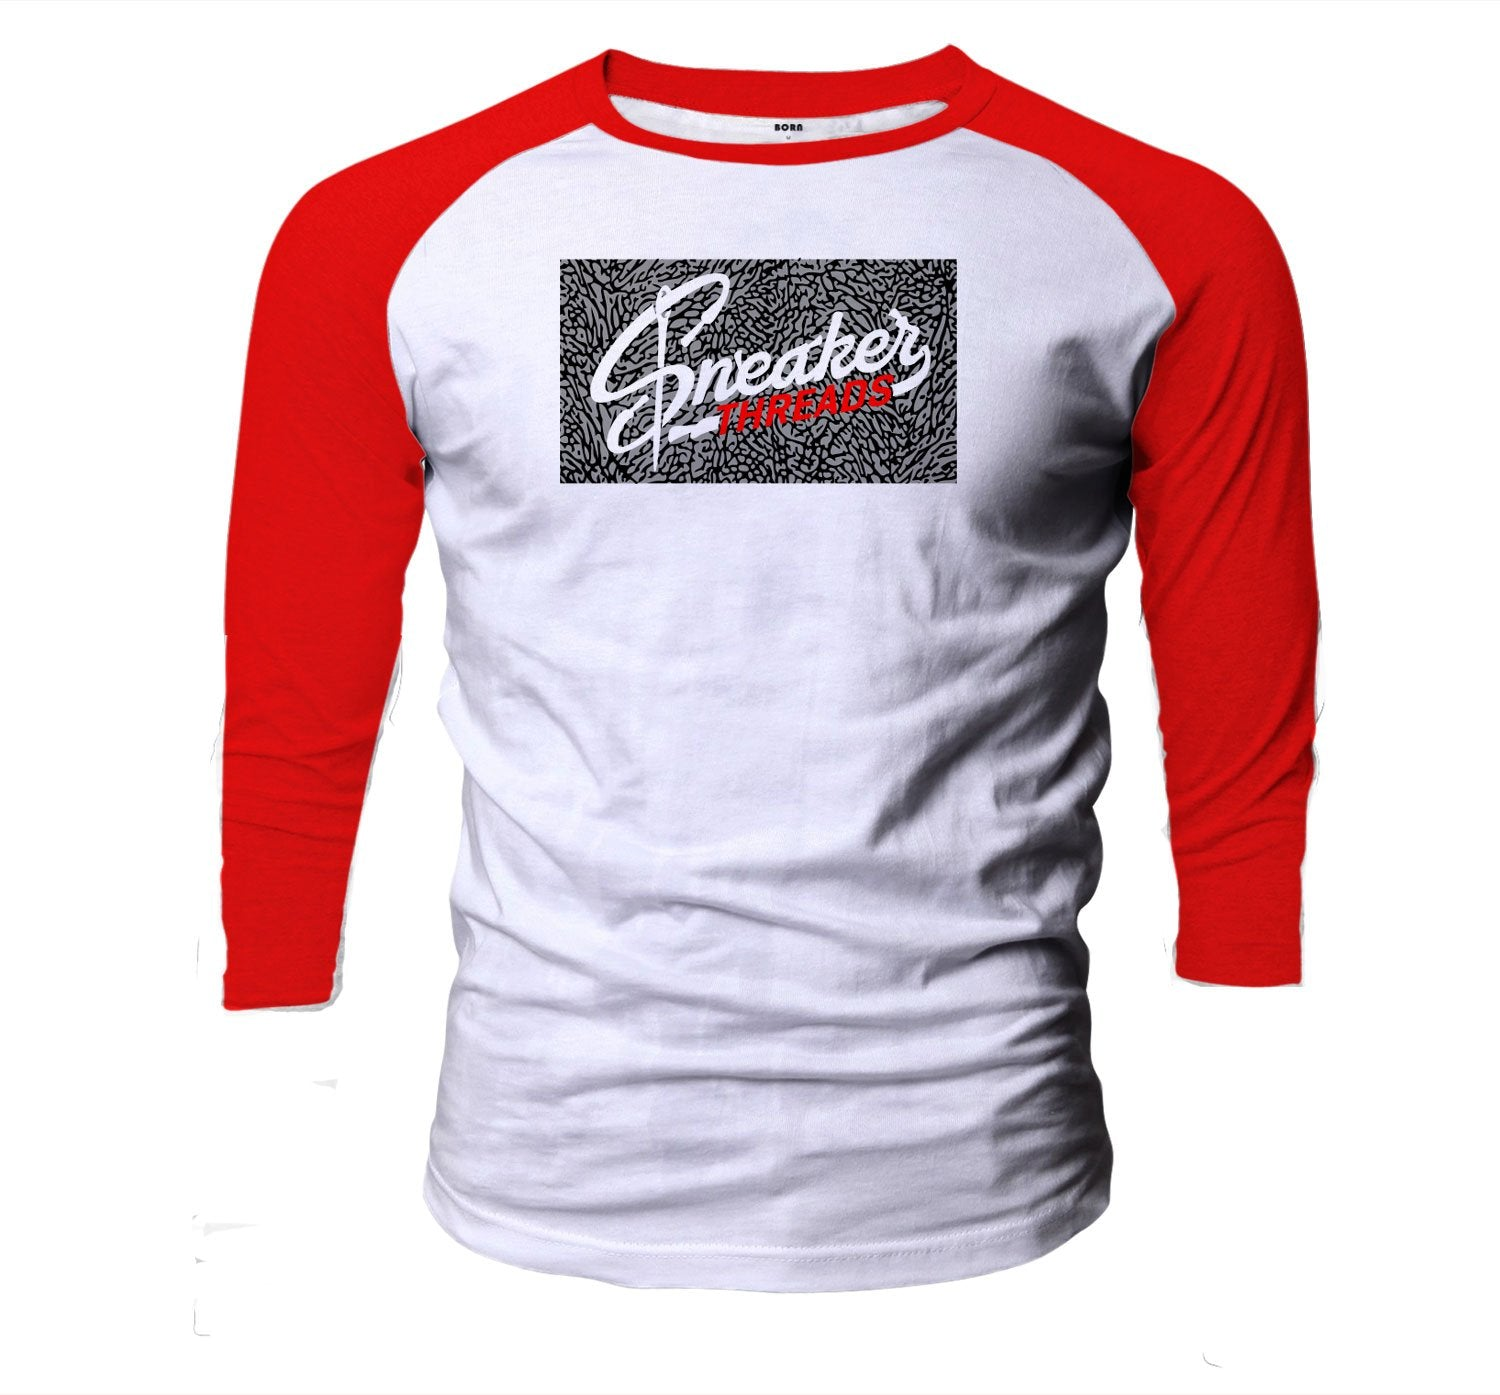 Red Cement Jordan 3s matching mens baseball tee collection